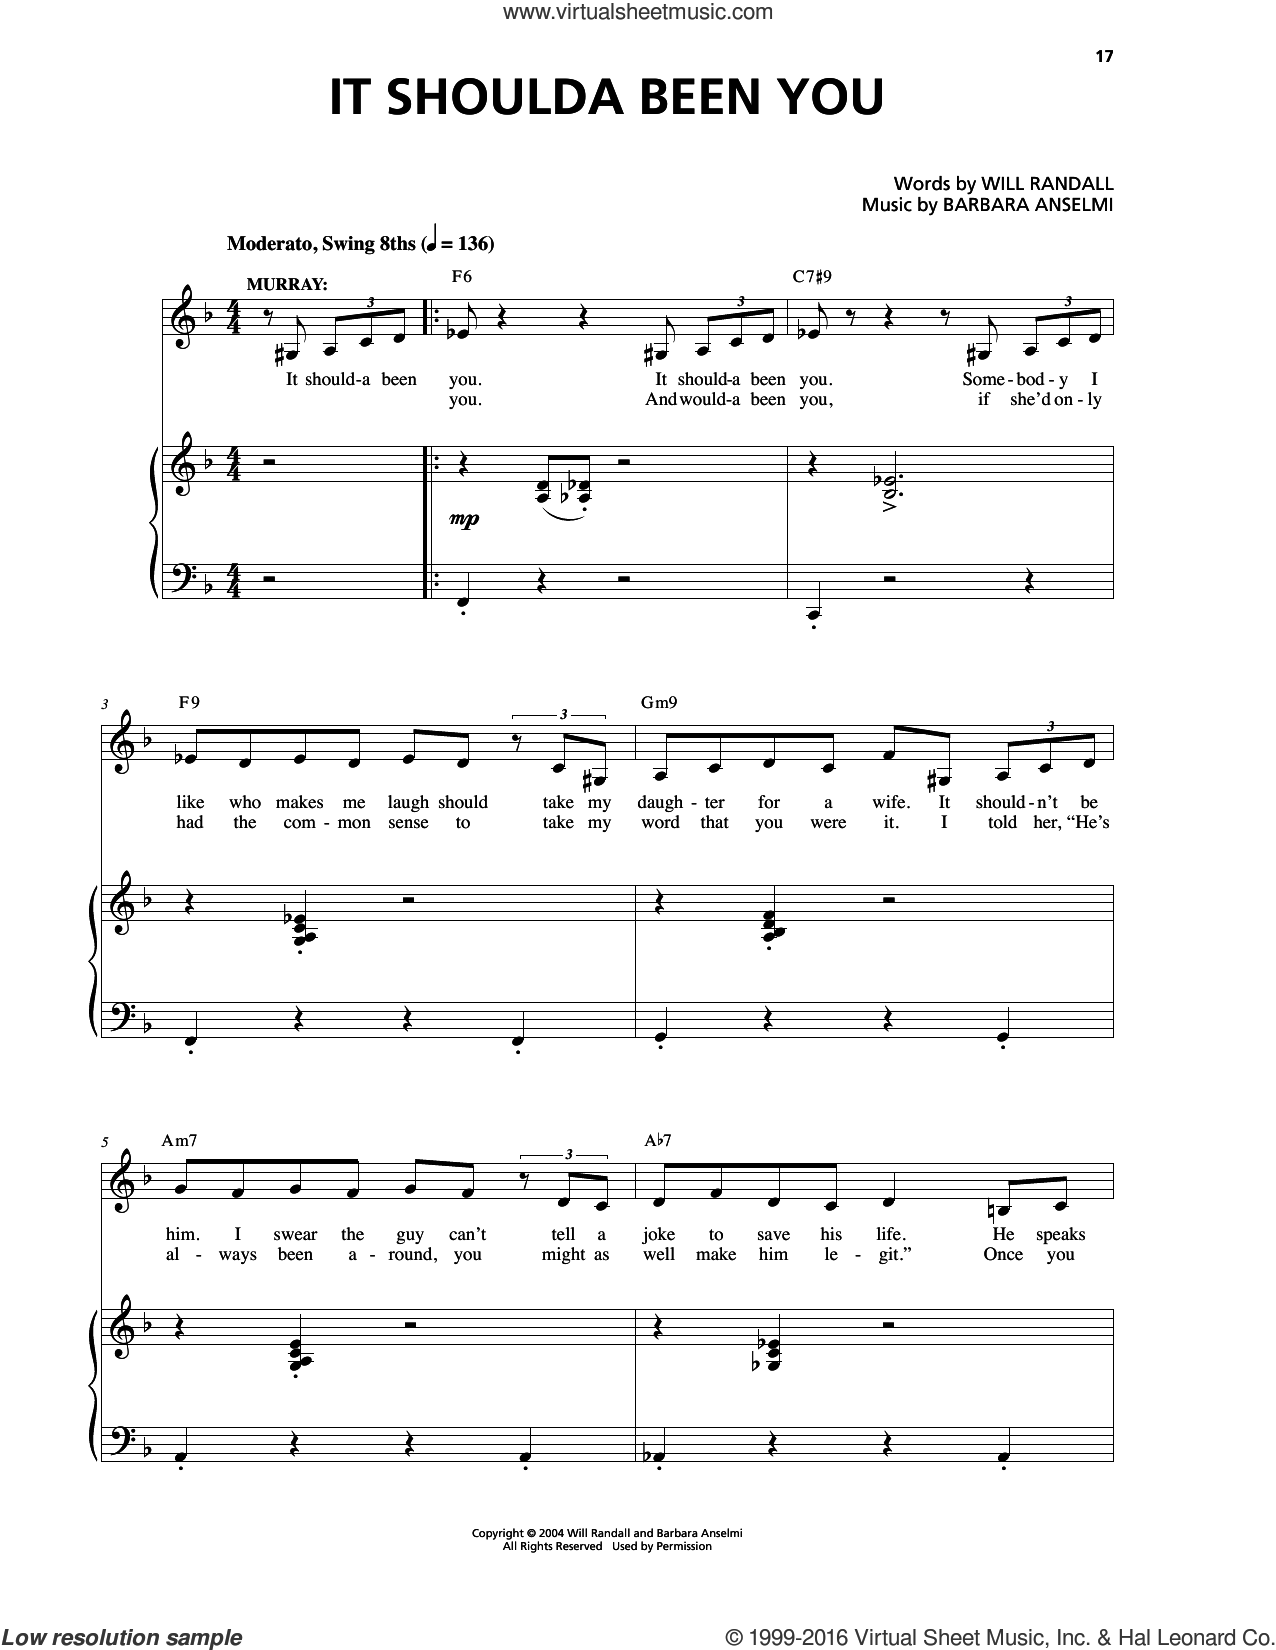 It Shoulda Been You sheet music for voice and piano by Barbara Anselmi & Brian Hargrove, Barbara Anselmi, Barbara Anselmi & Will Randall, Brian Hargrove and Will Randall, intermediate skill level